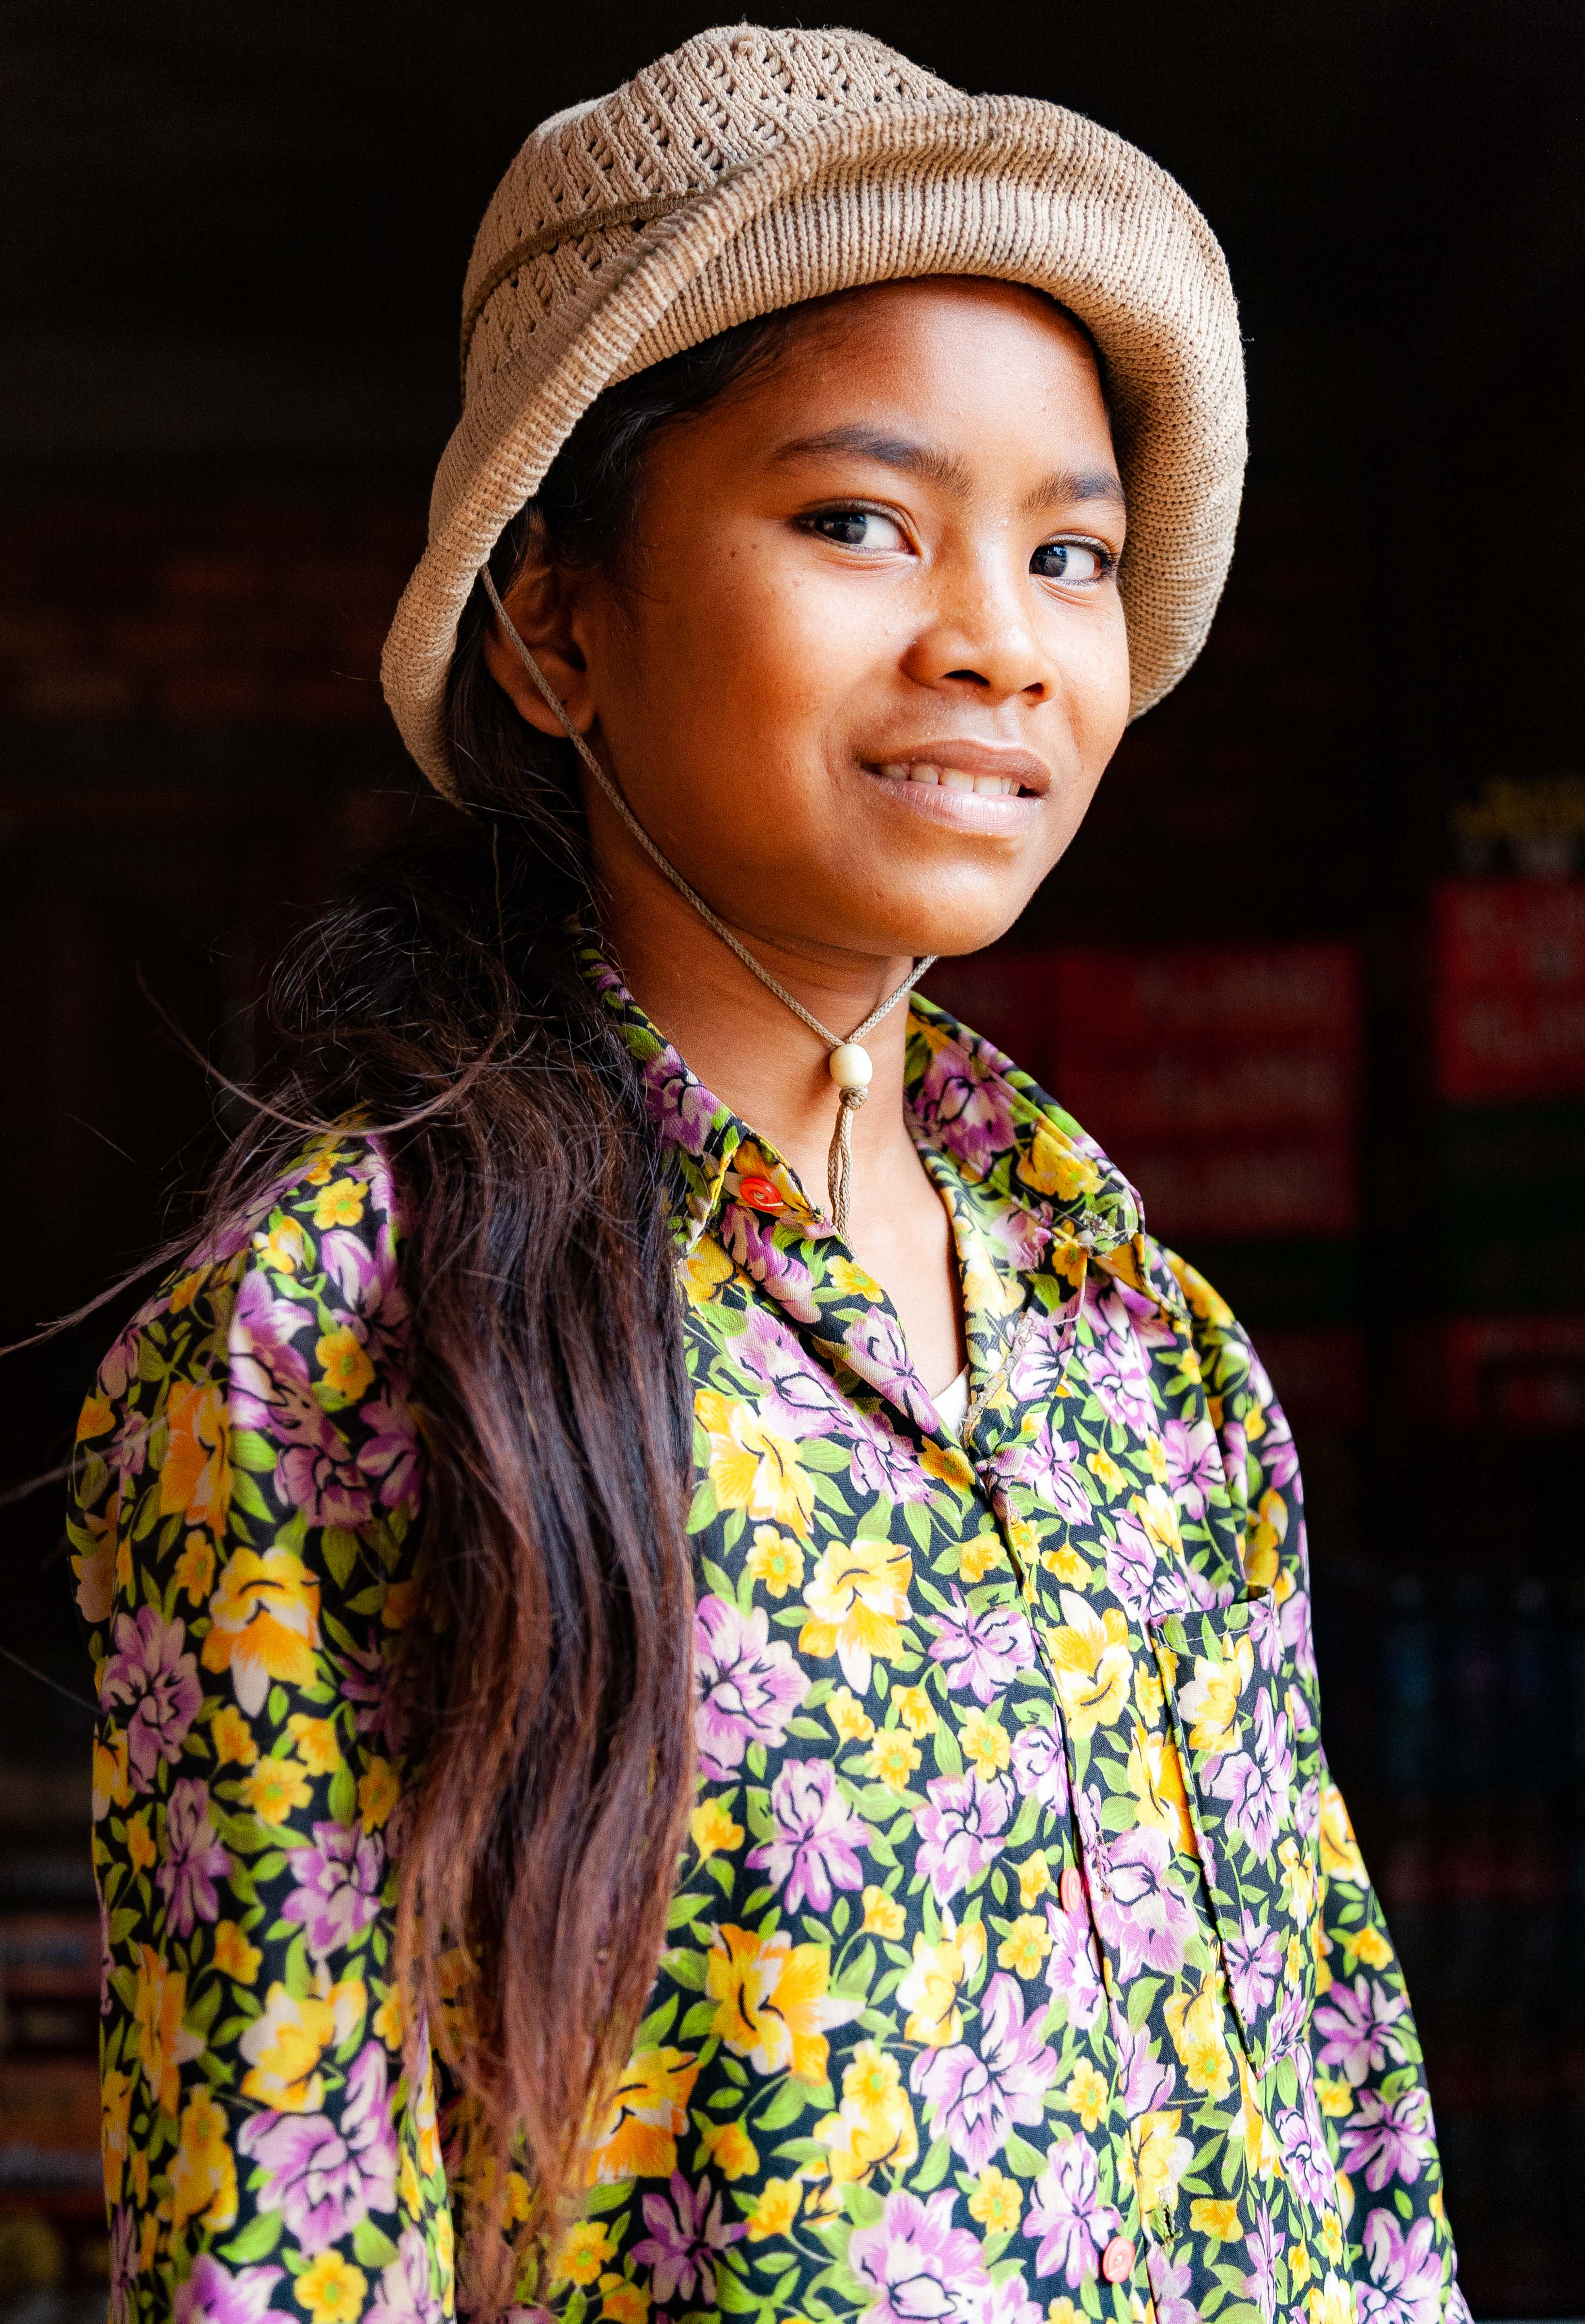 Cambodia, Kampong Thum Prov, Country Girl, 2010, IMG 5544